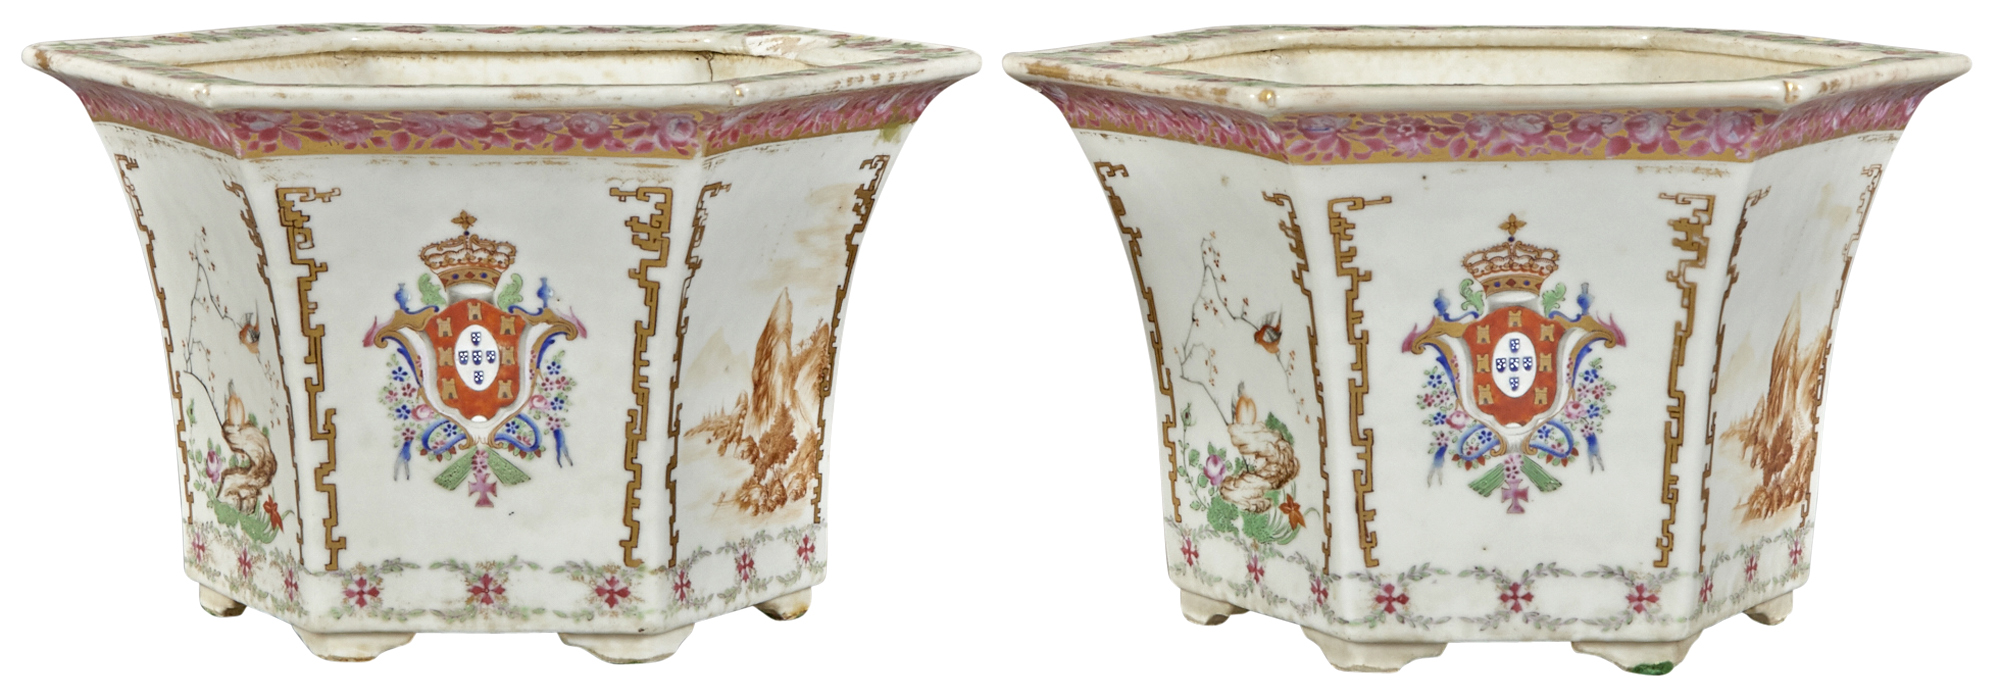 Lot image - Pair of Chinese Export Style Armorial Porcelain Jardinieres